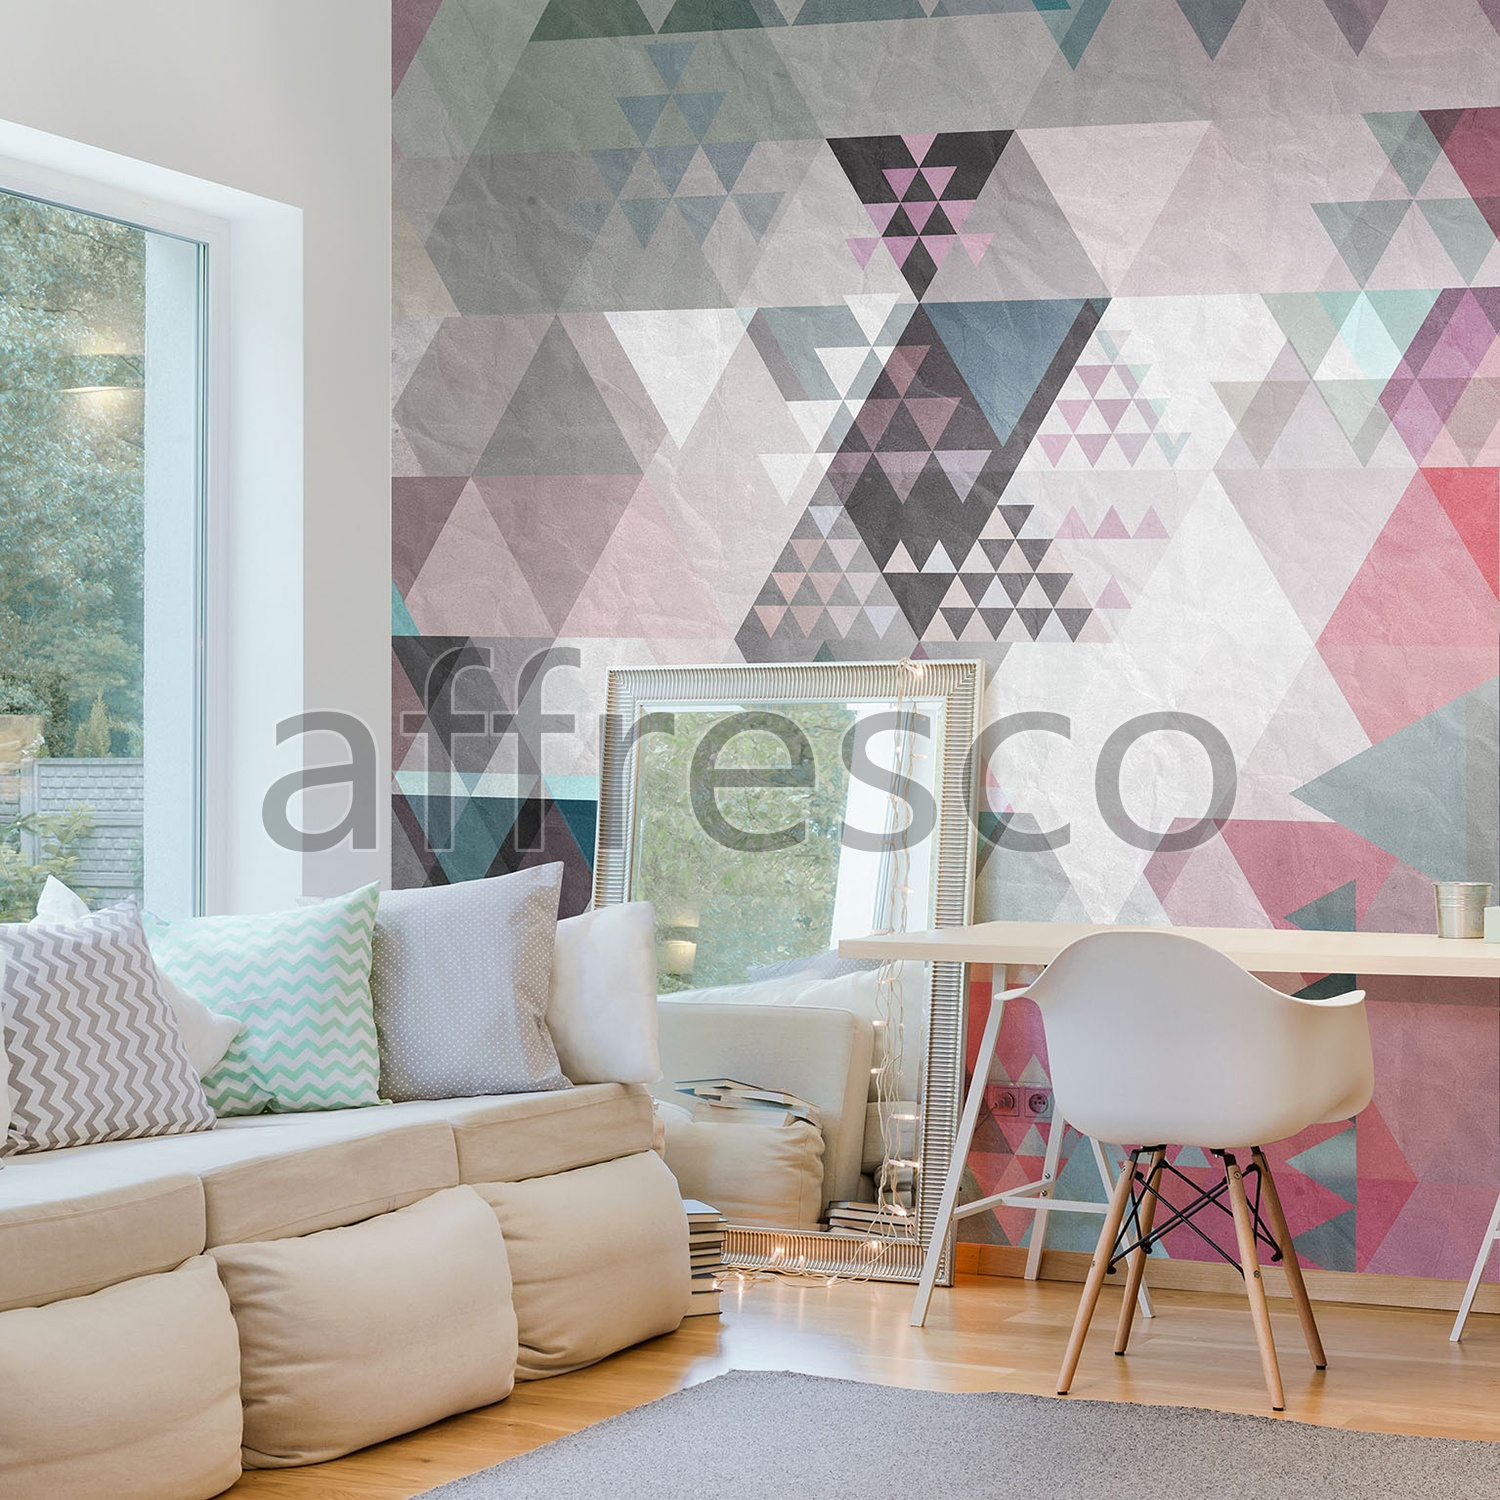 Handmade wallpaper, Handmade wallpaper | Geometry